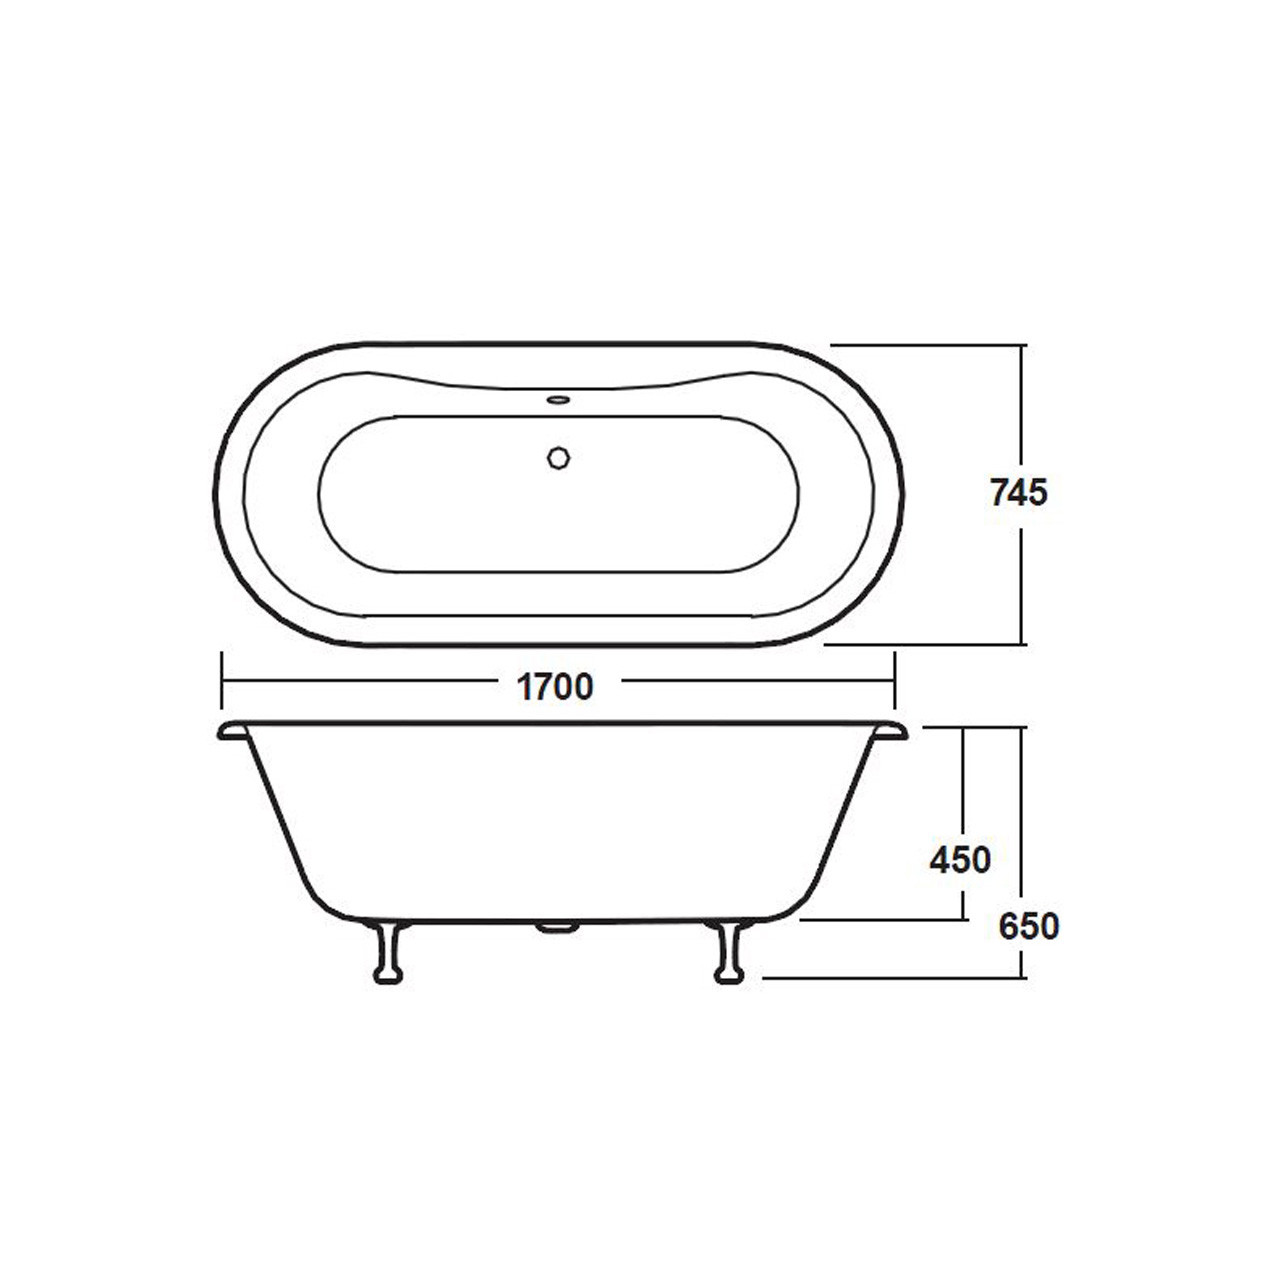 Premier White Grosvenor 1700 Double Ended Freestanding Bath with Pride Legs - RL1705C2